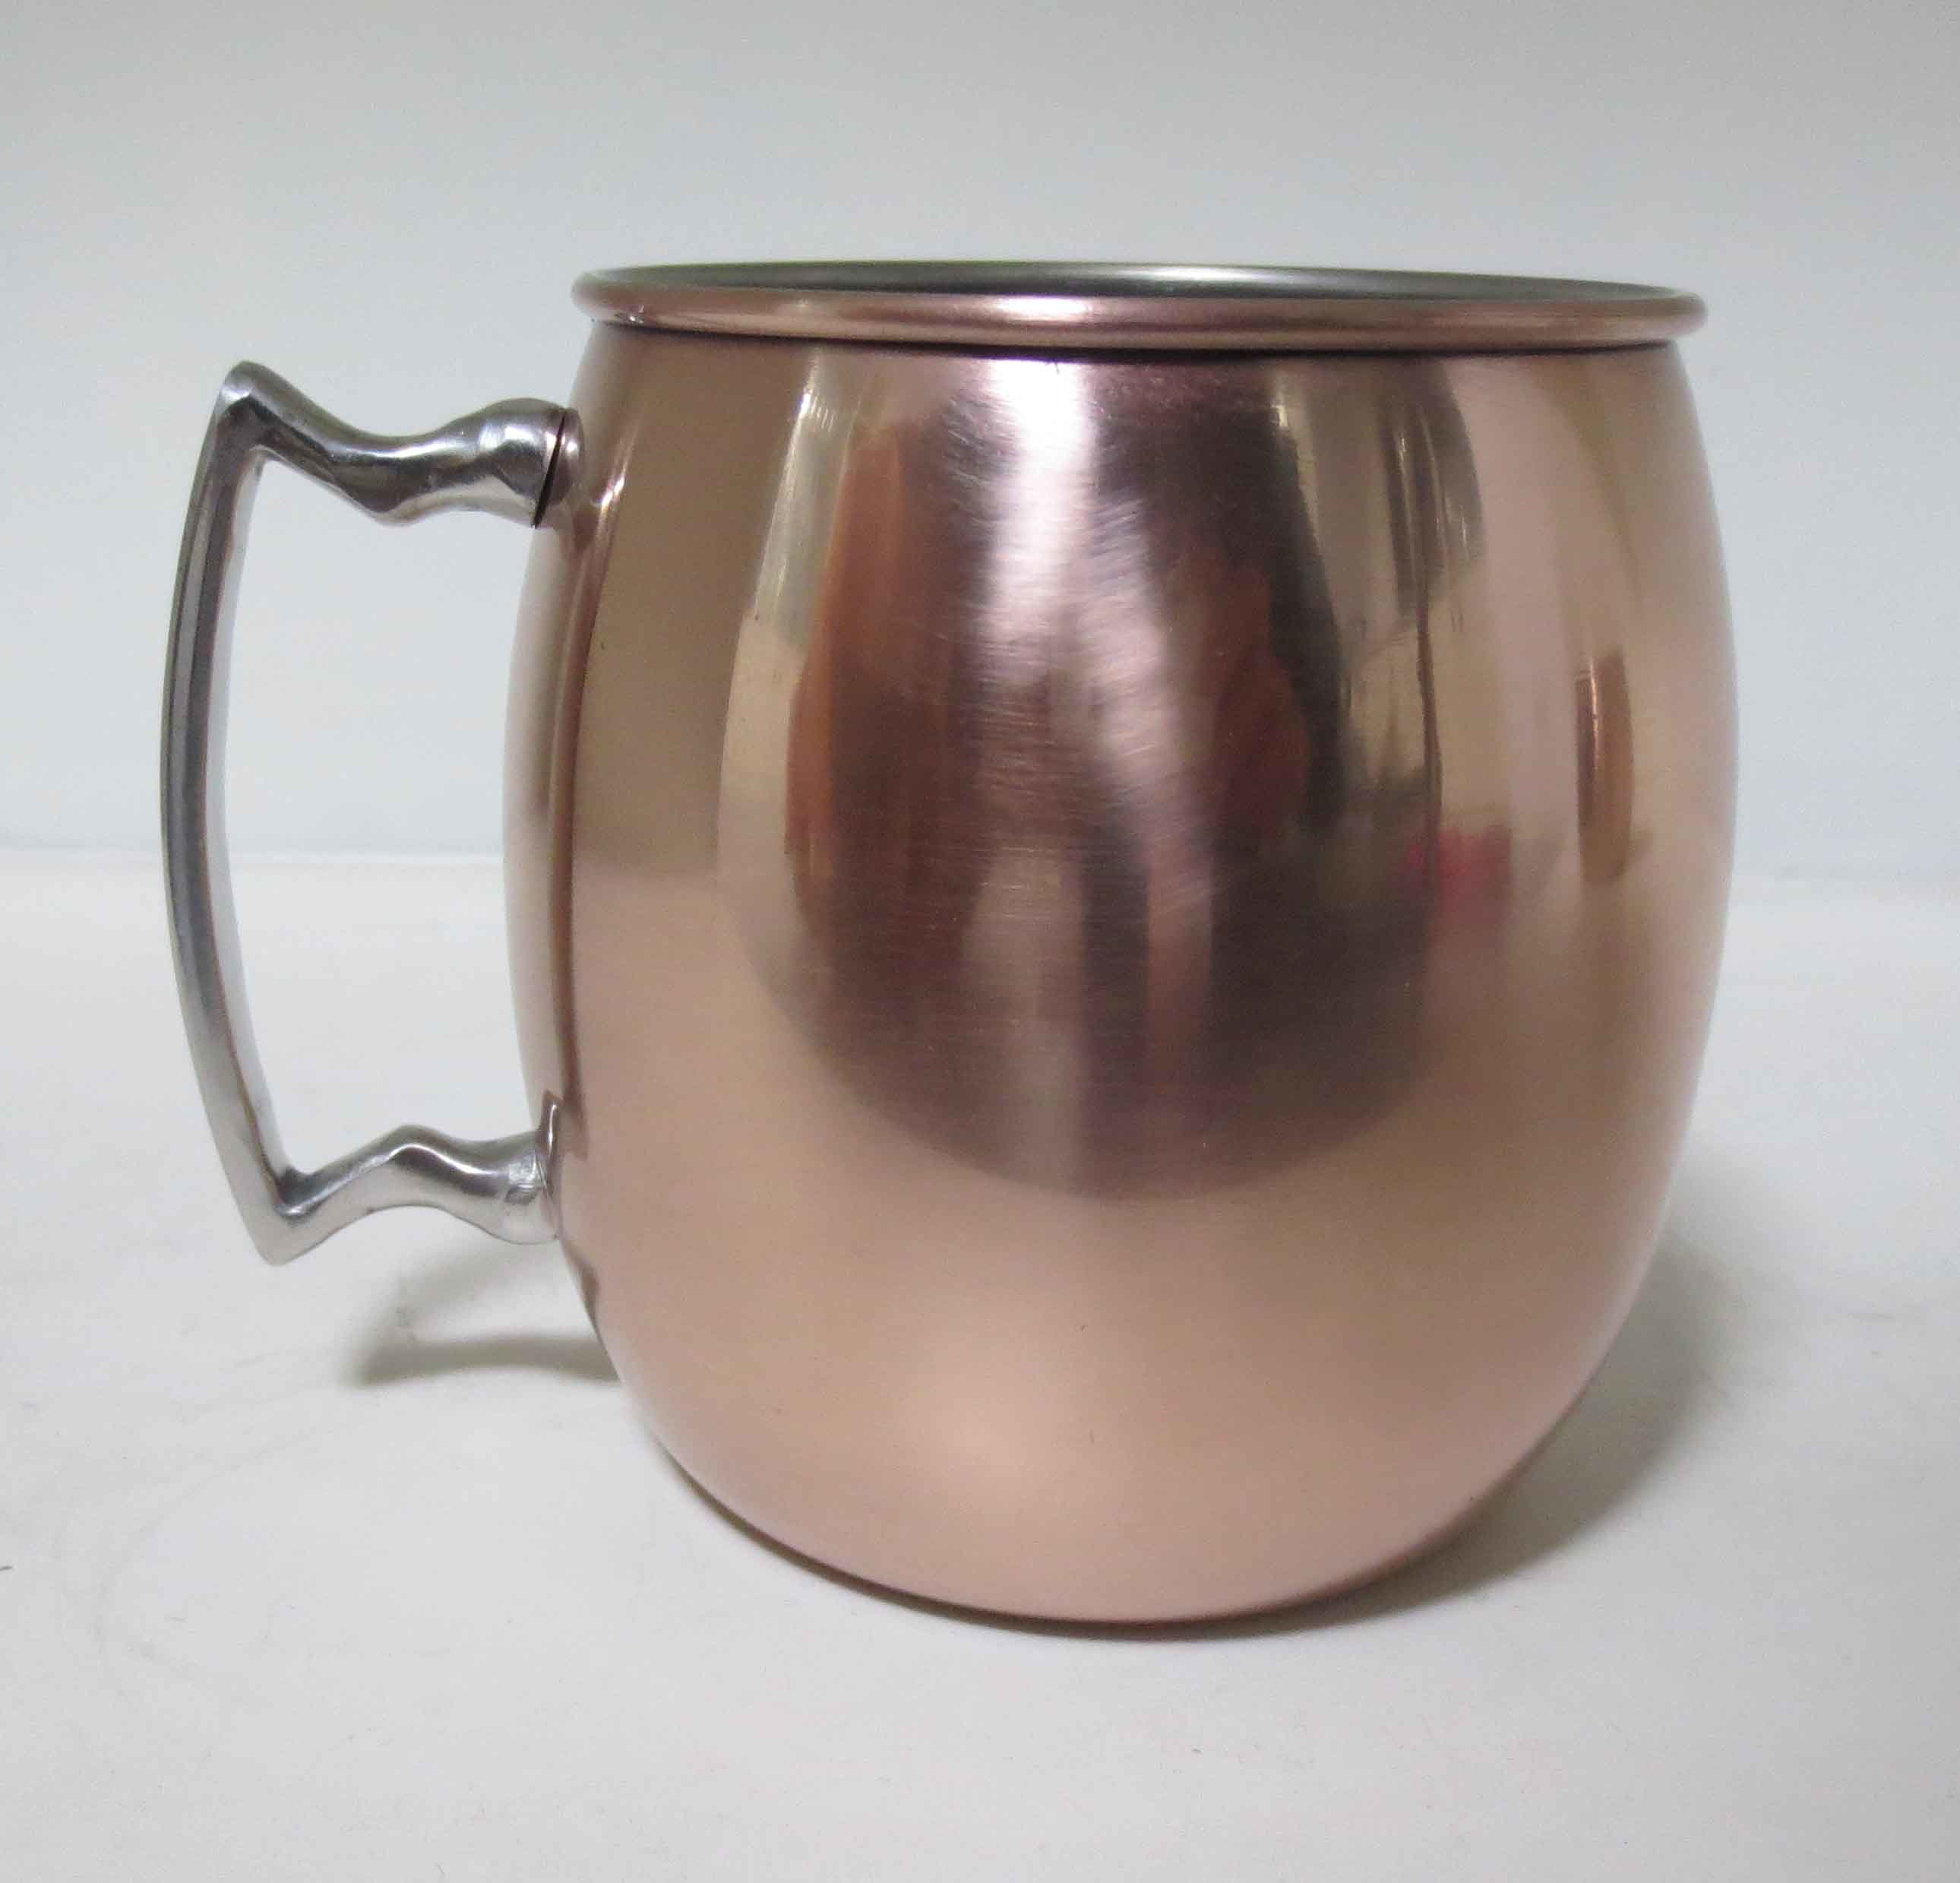 Stainless Steel Moscow Mule Copper Mug